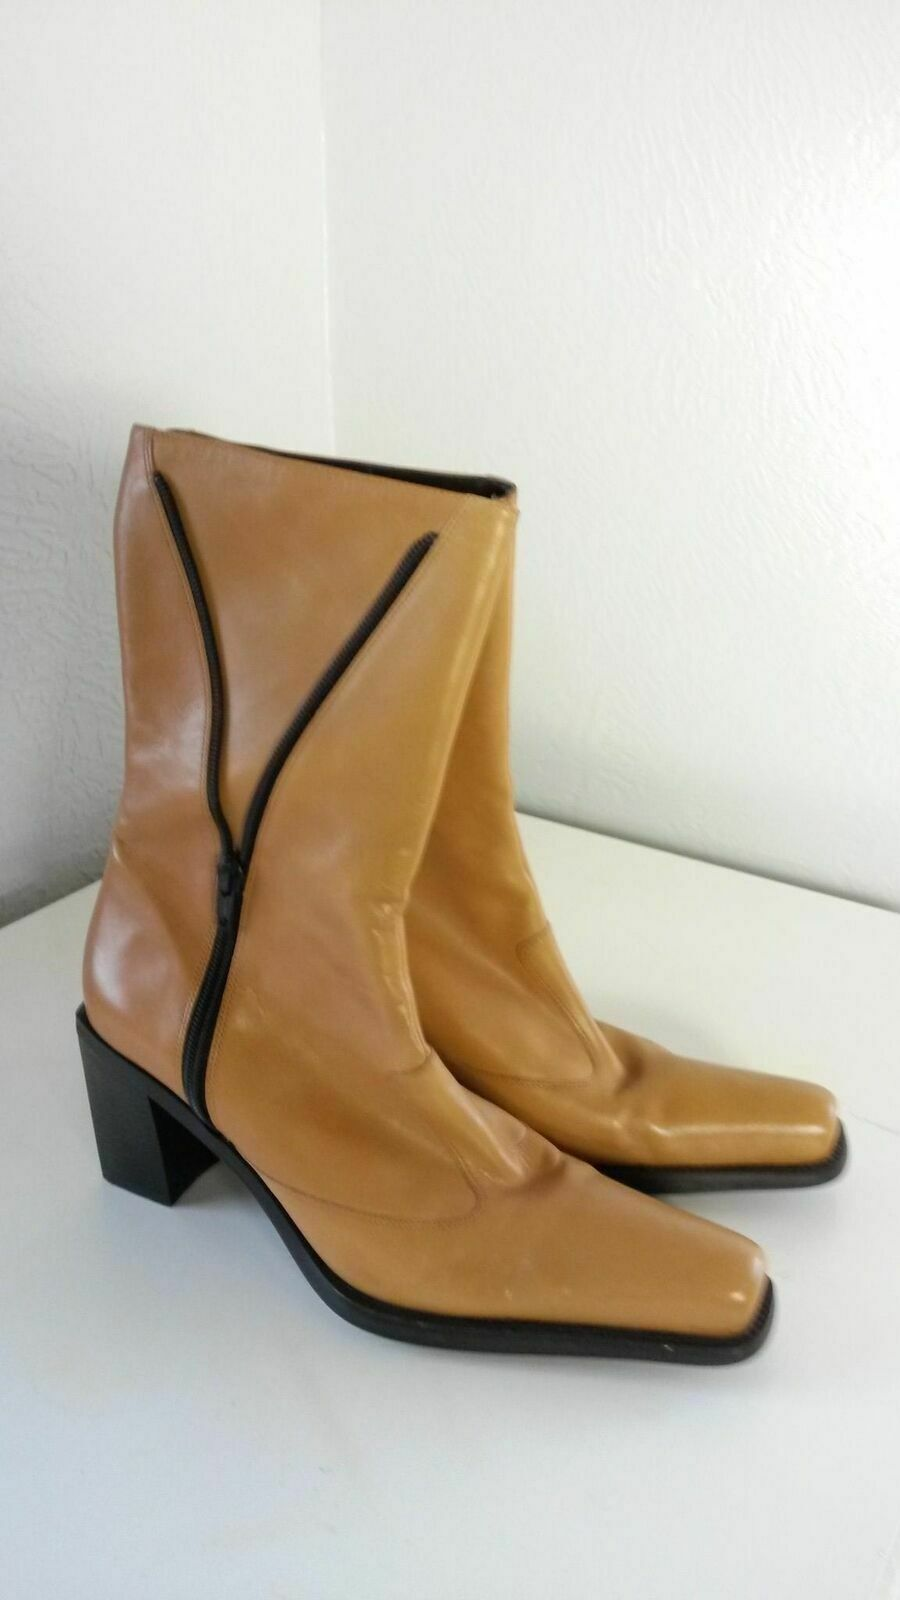 Tothemax  Women's Camel Leather Boots Very Good Cond. Size 8B   38.5 (068)